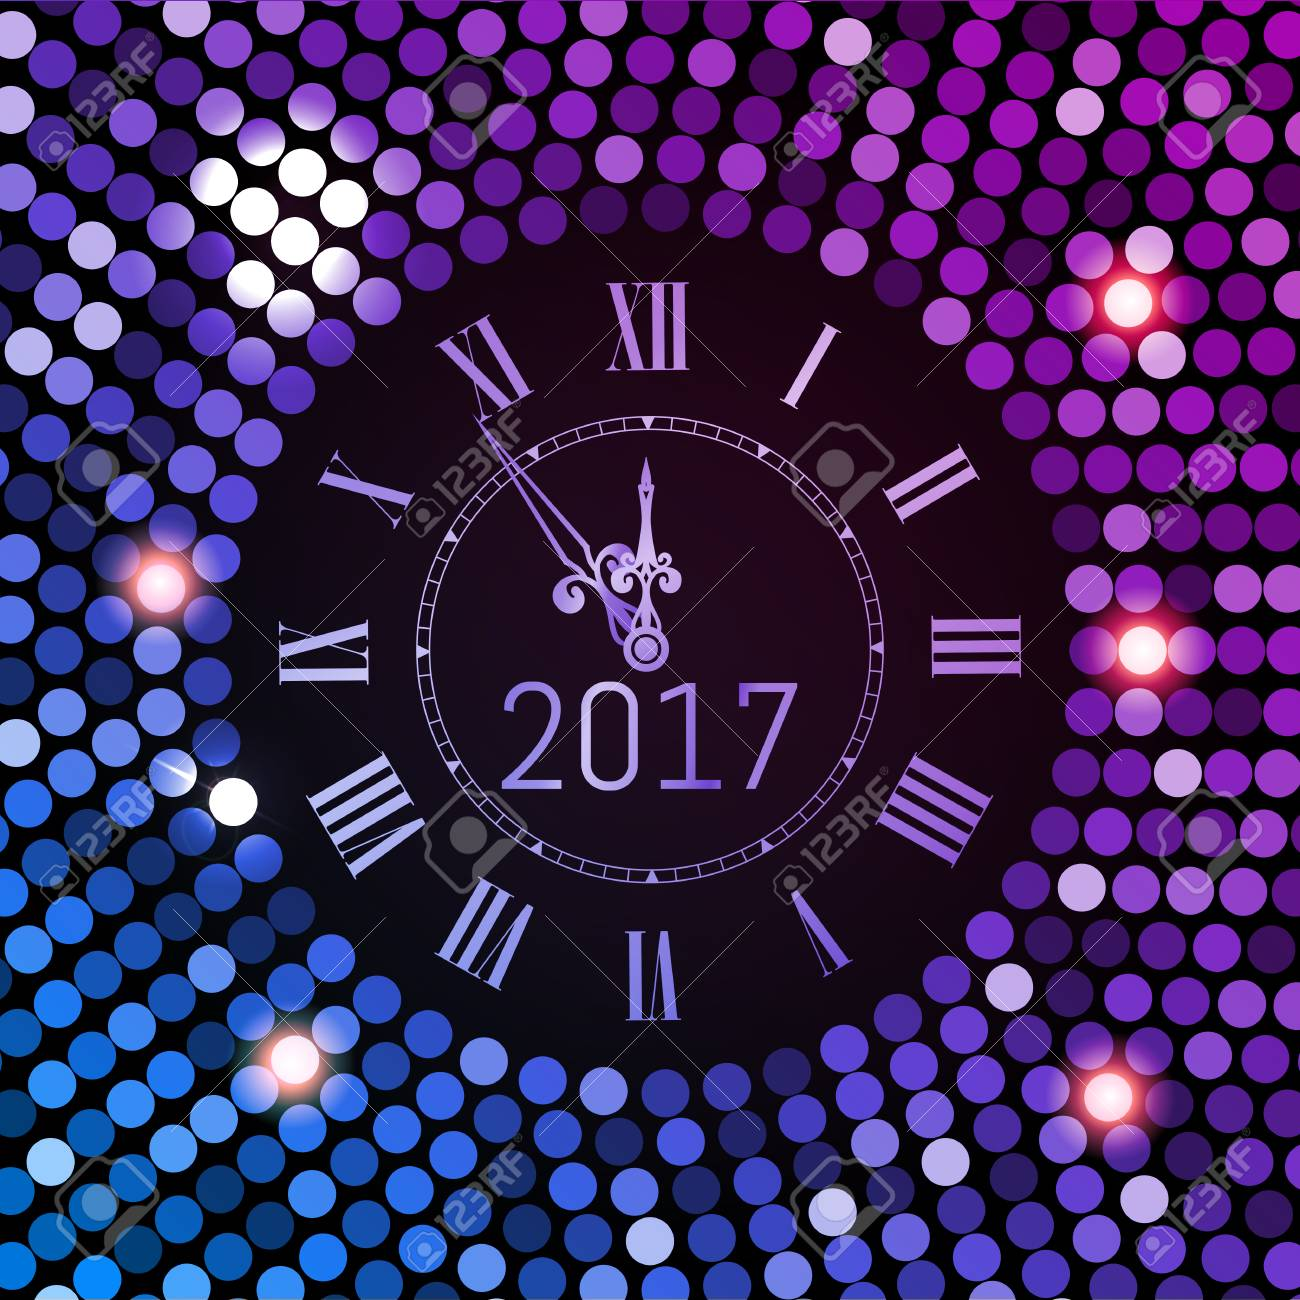 illustration new year 2017 celebration background purple circle disco pattern background with clock number 2017 shining gradient club neon happy new